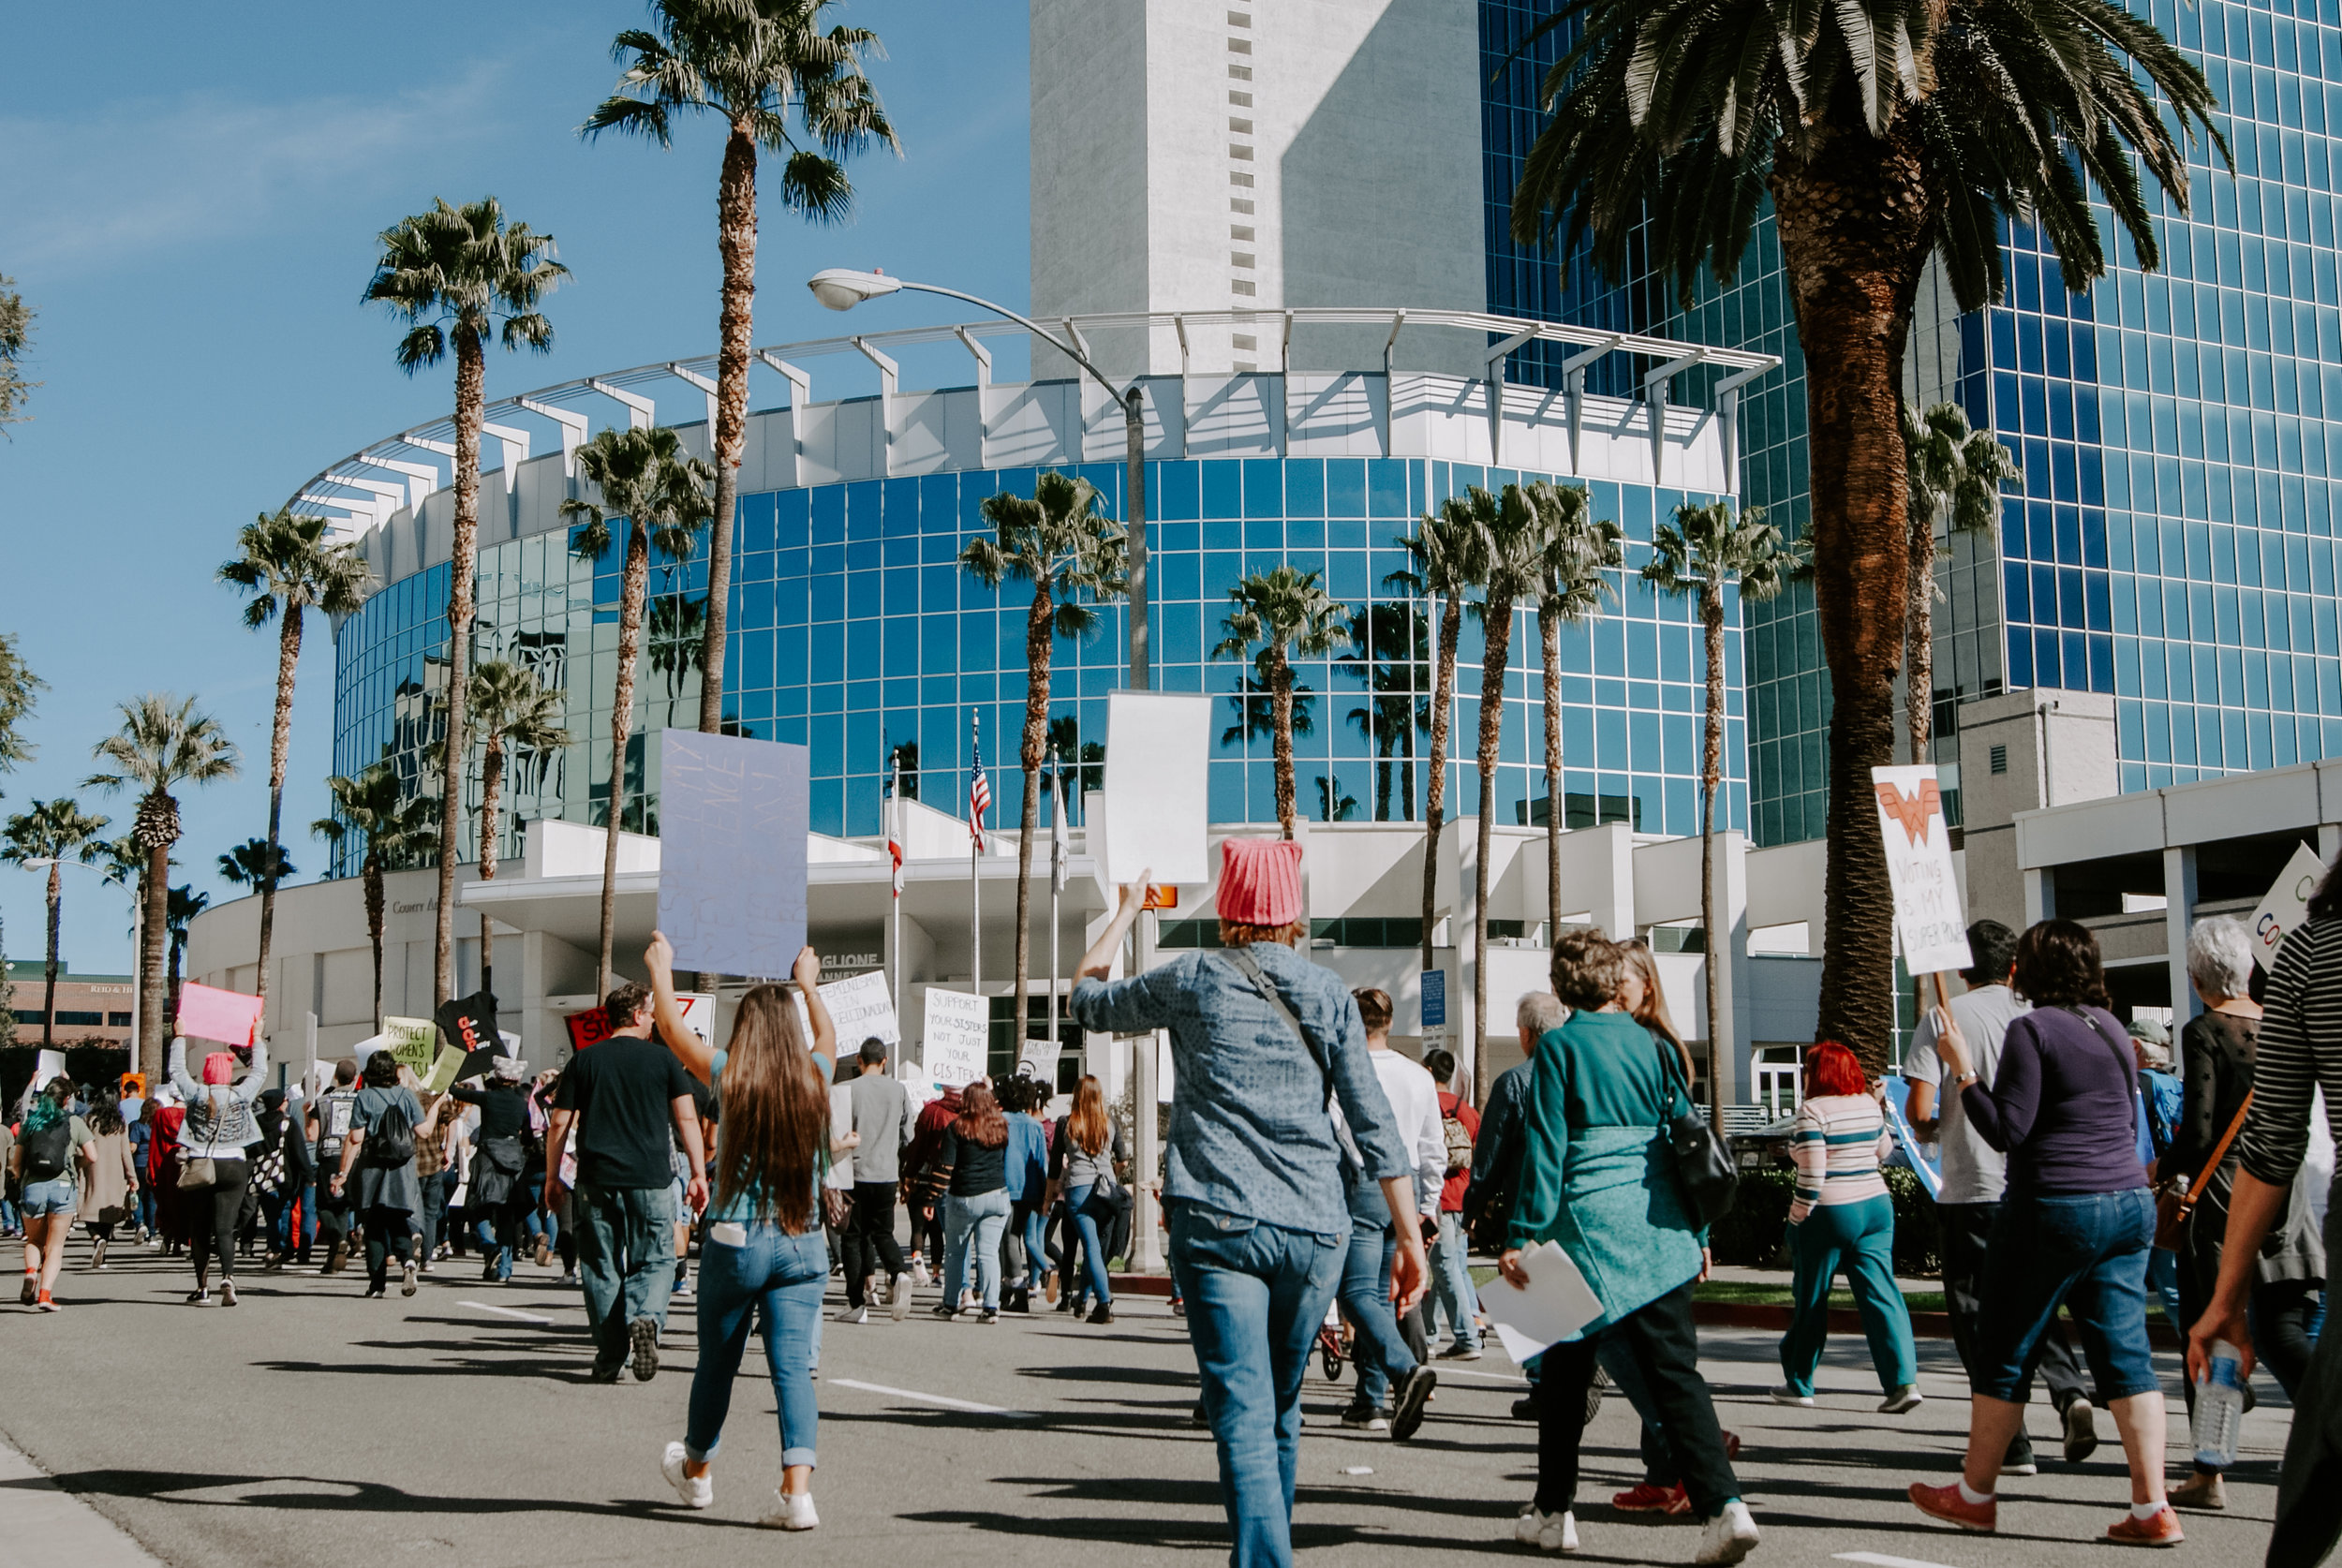 Women and men hold their posters and chant while marching down the streets of Riverside, California. The march started at 11 a.m., after spokespeople rallied up attendees. Photo by Tommy Stiles.